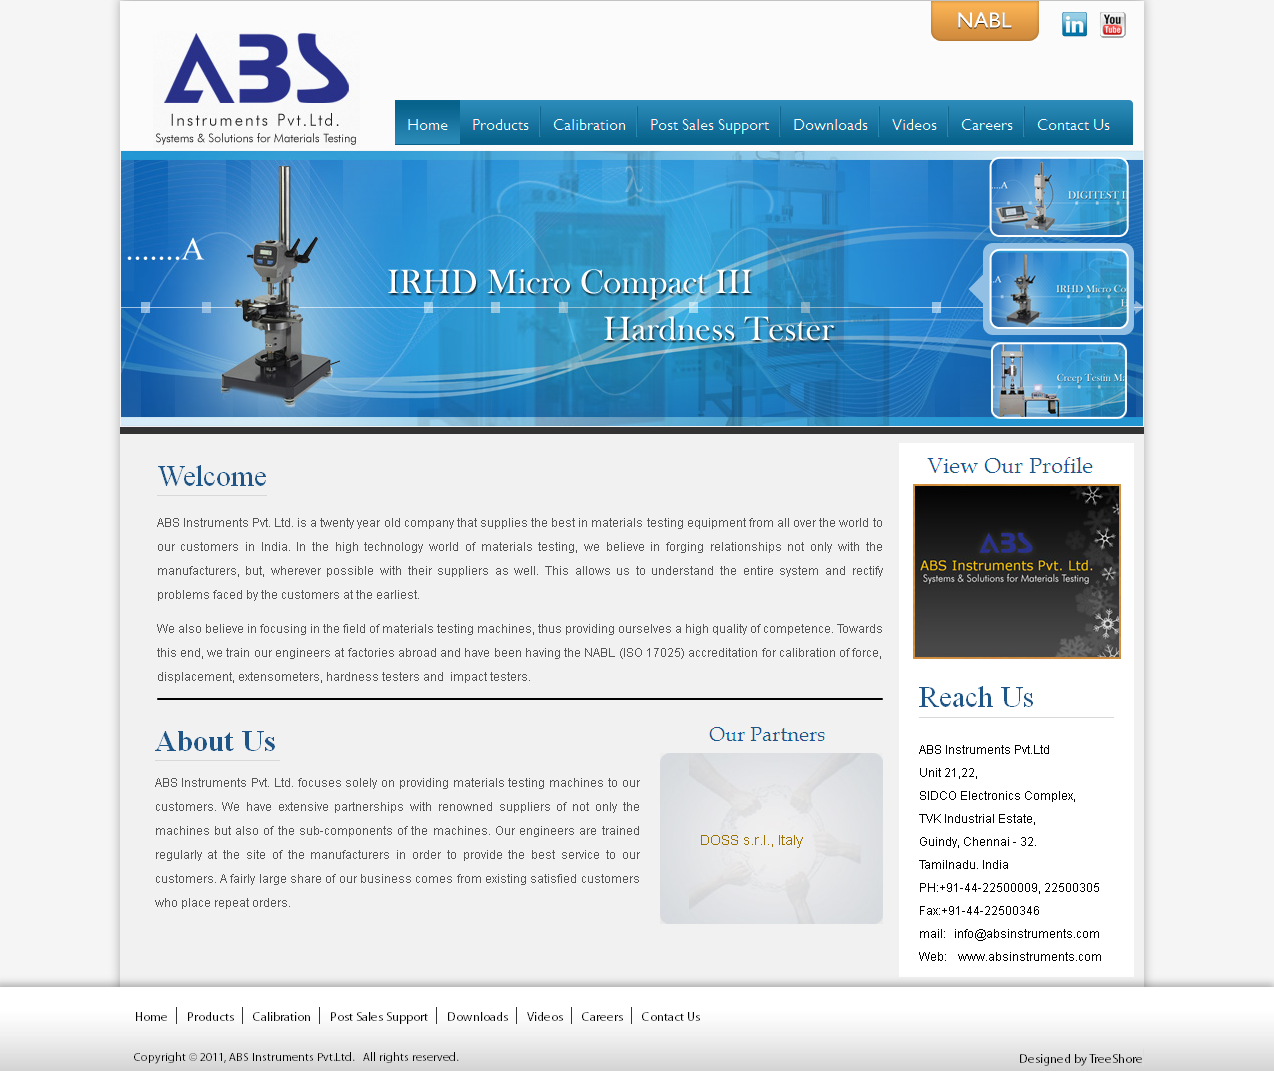 ABS Instruments